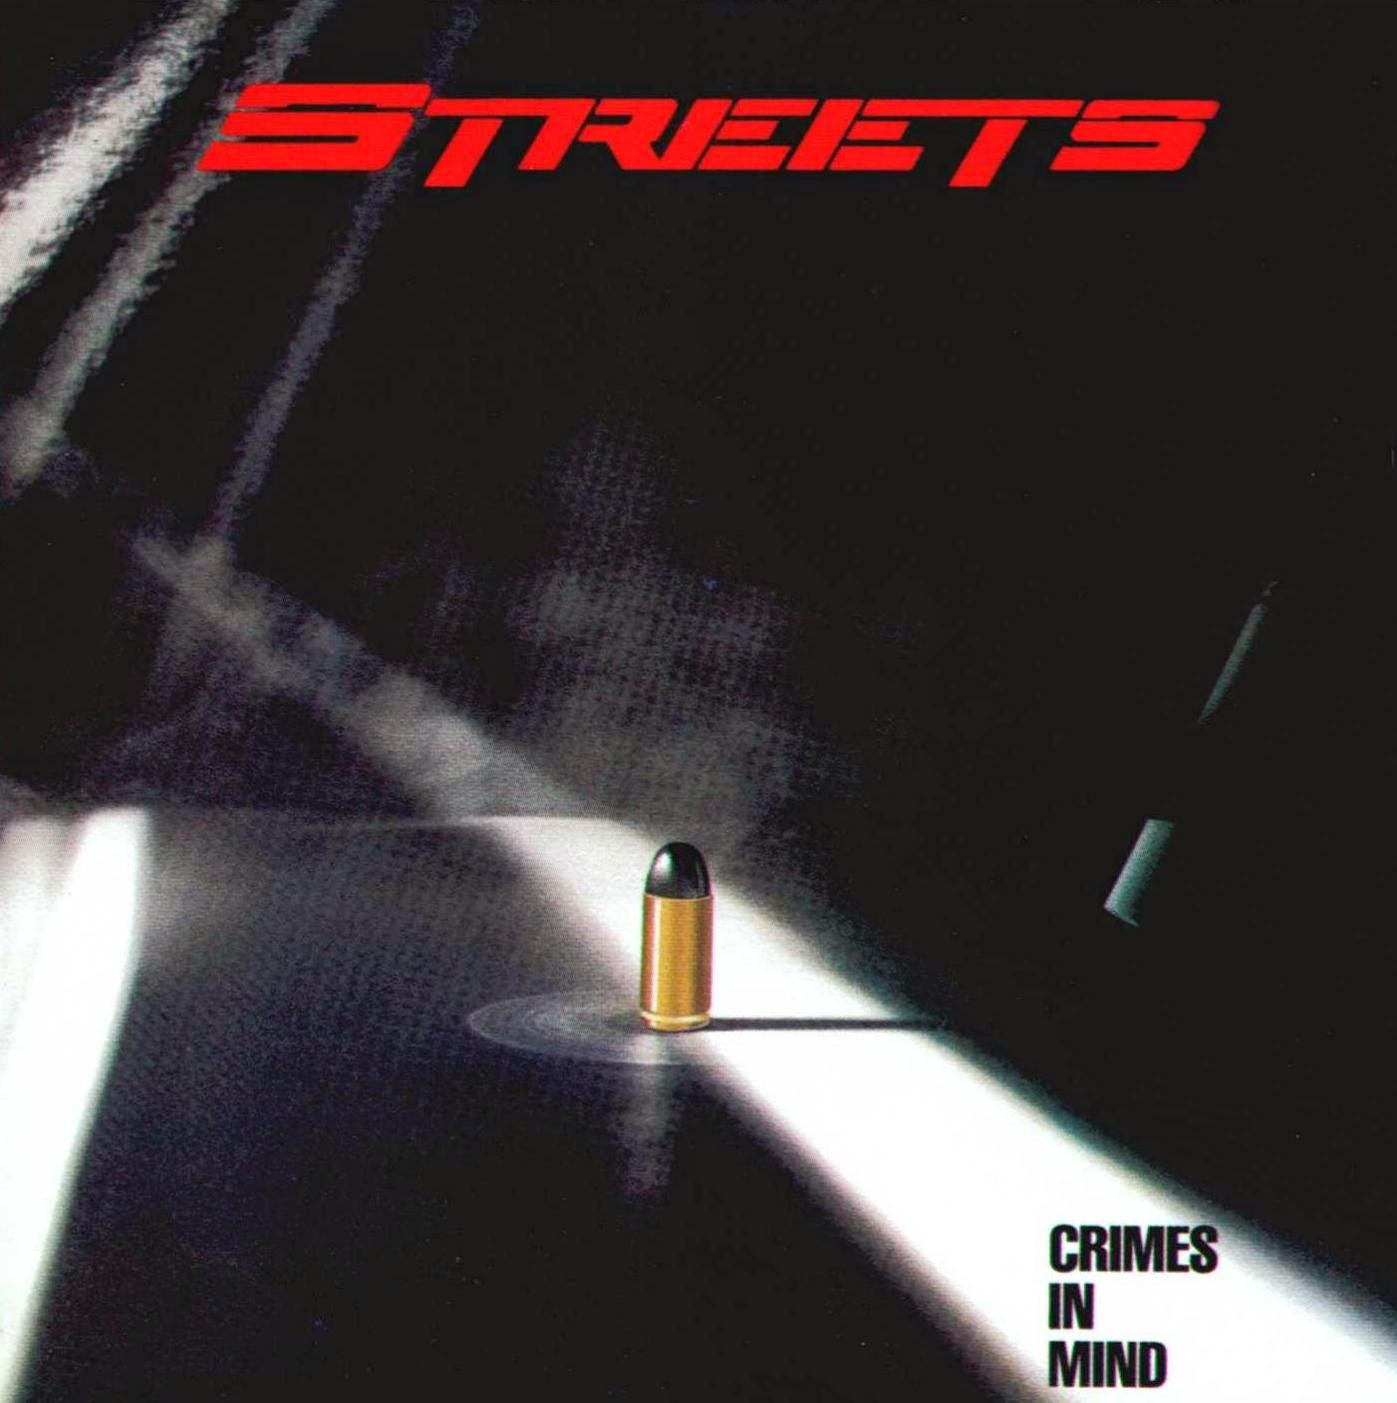 Streets Crimes in mind 1985 aor melodic rock